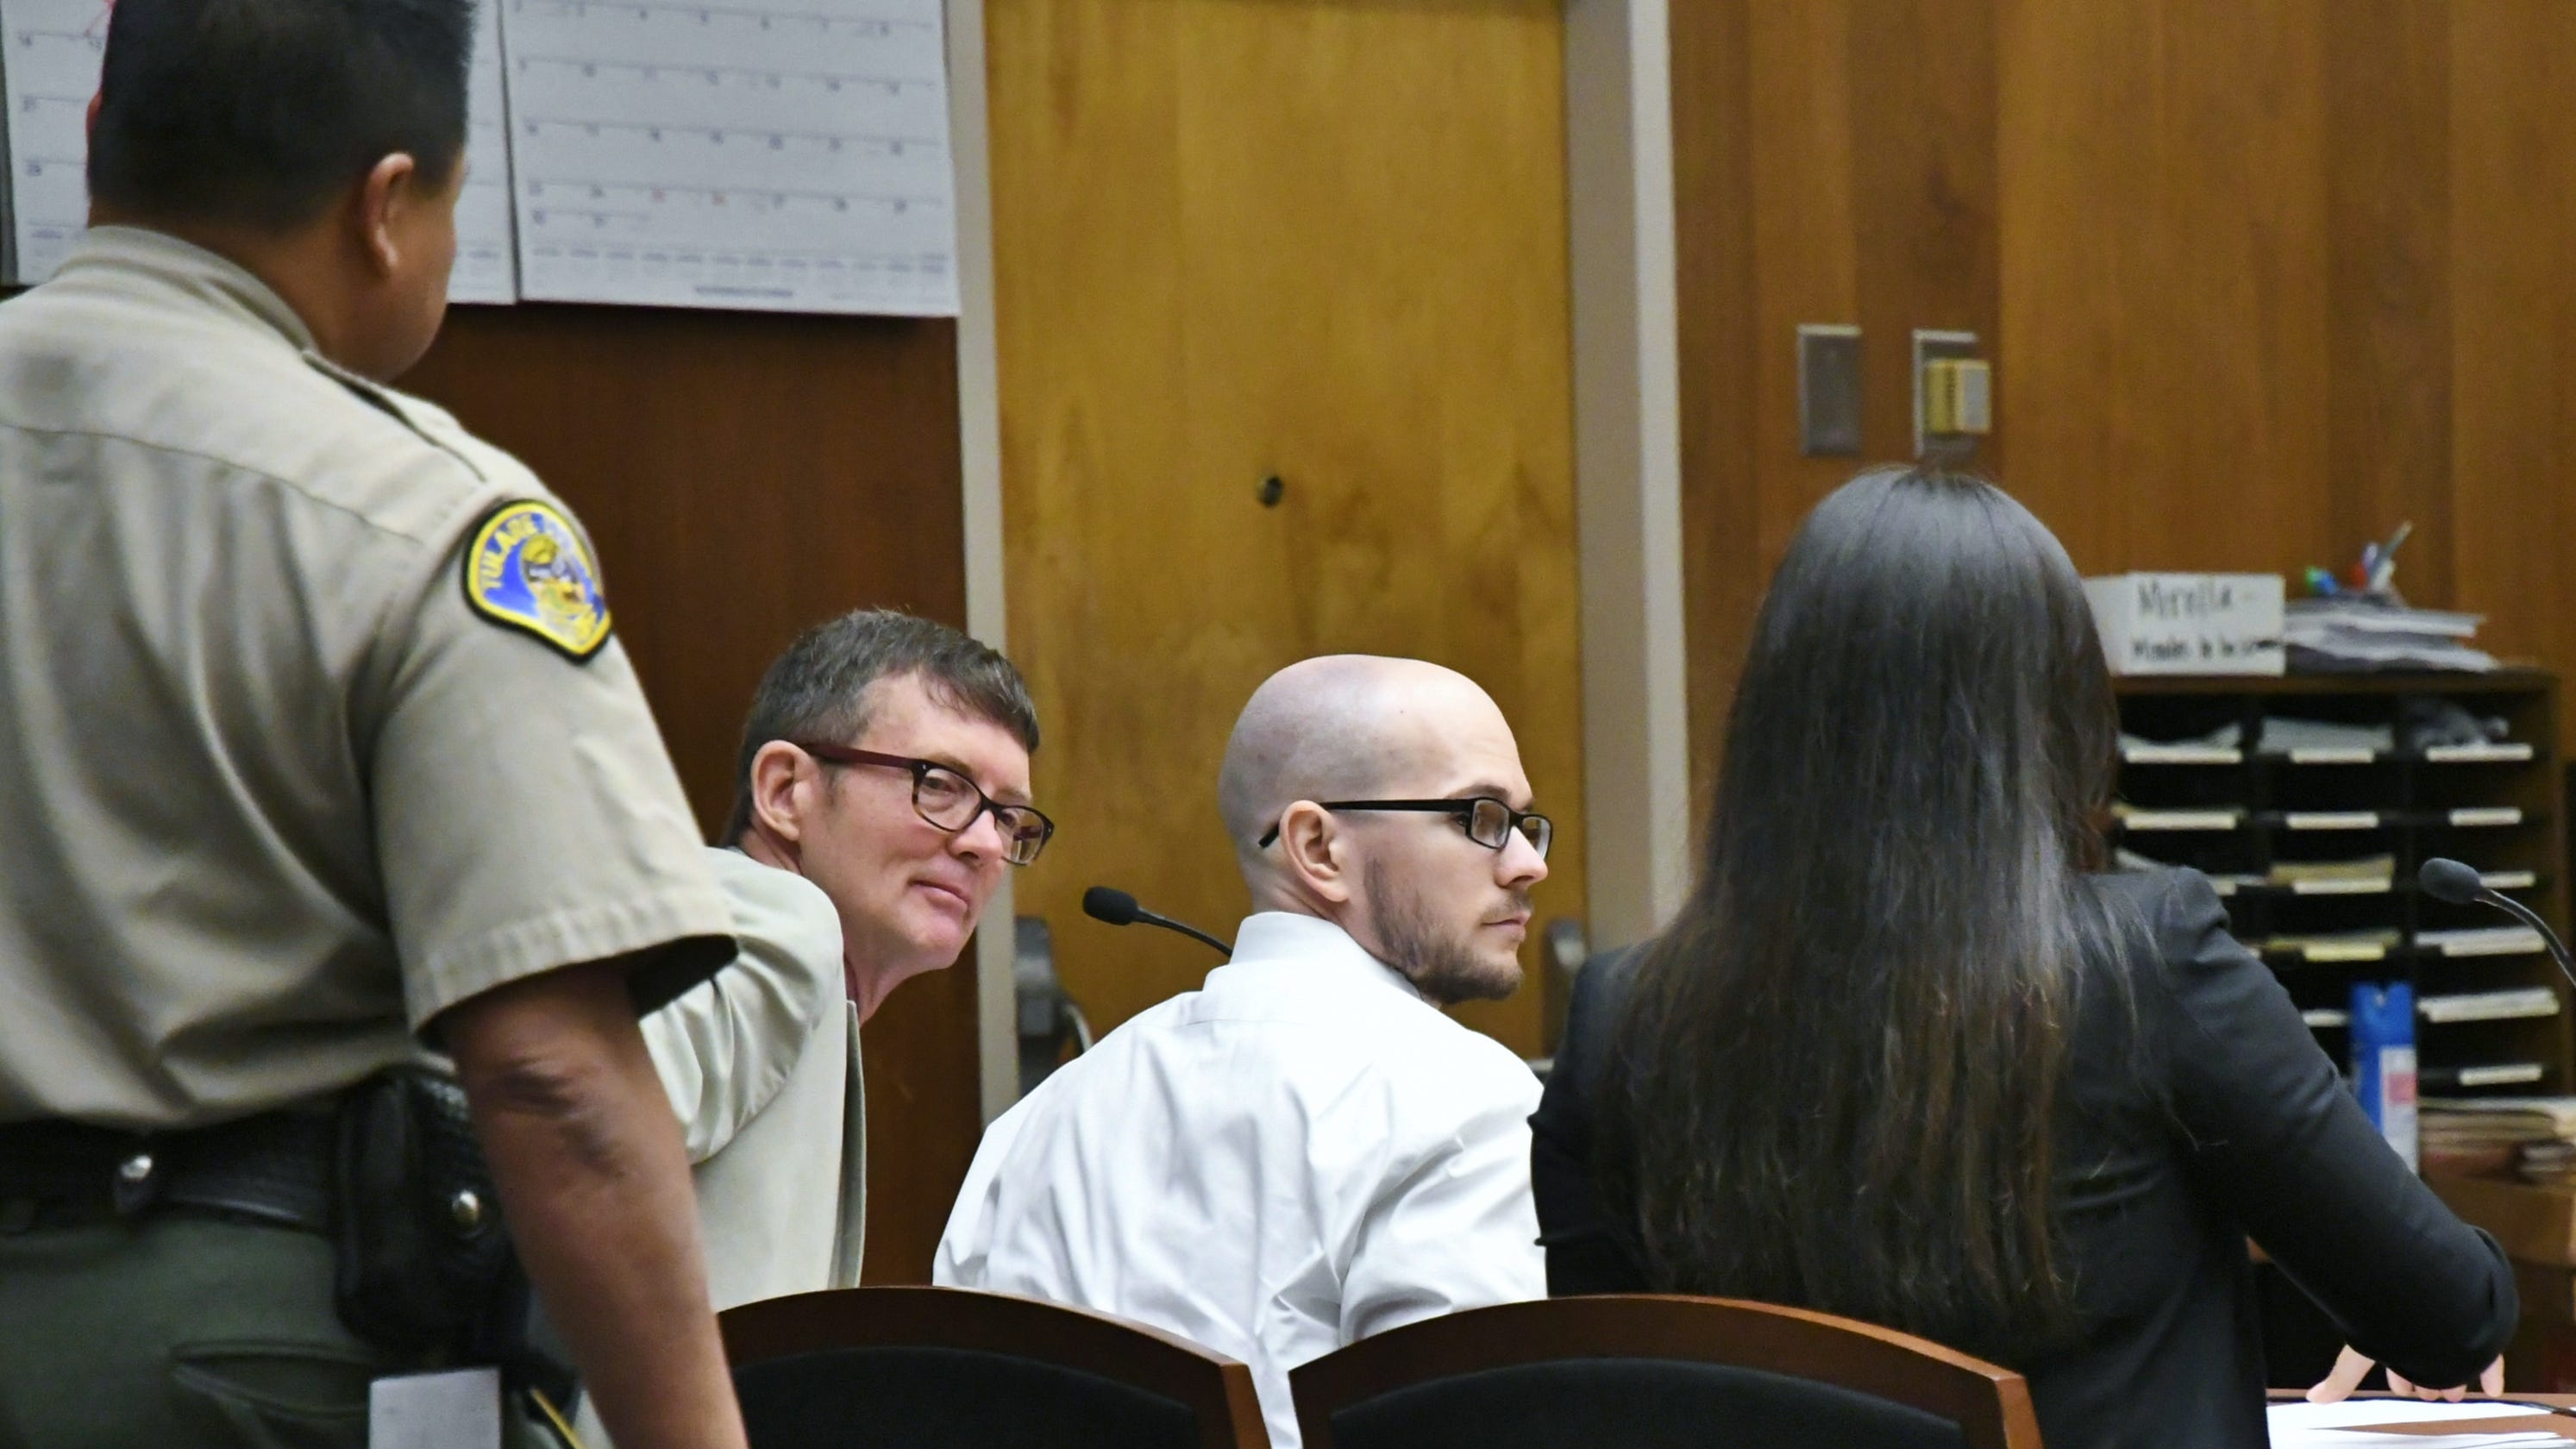 Here S A Look At The Biggest Tulare County Cases In Court In 2018